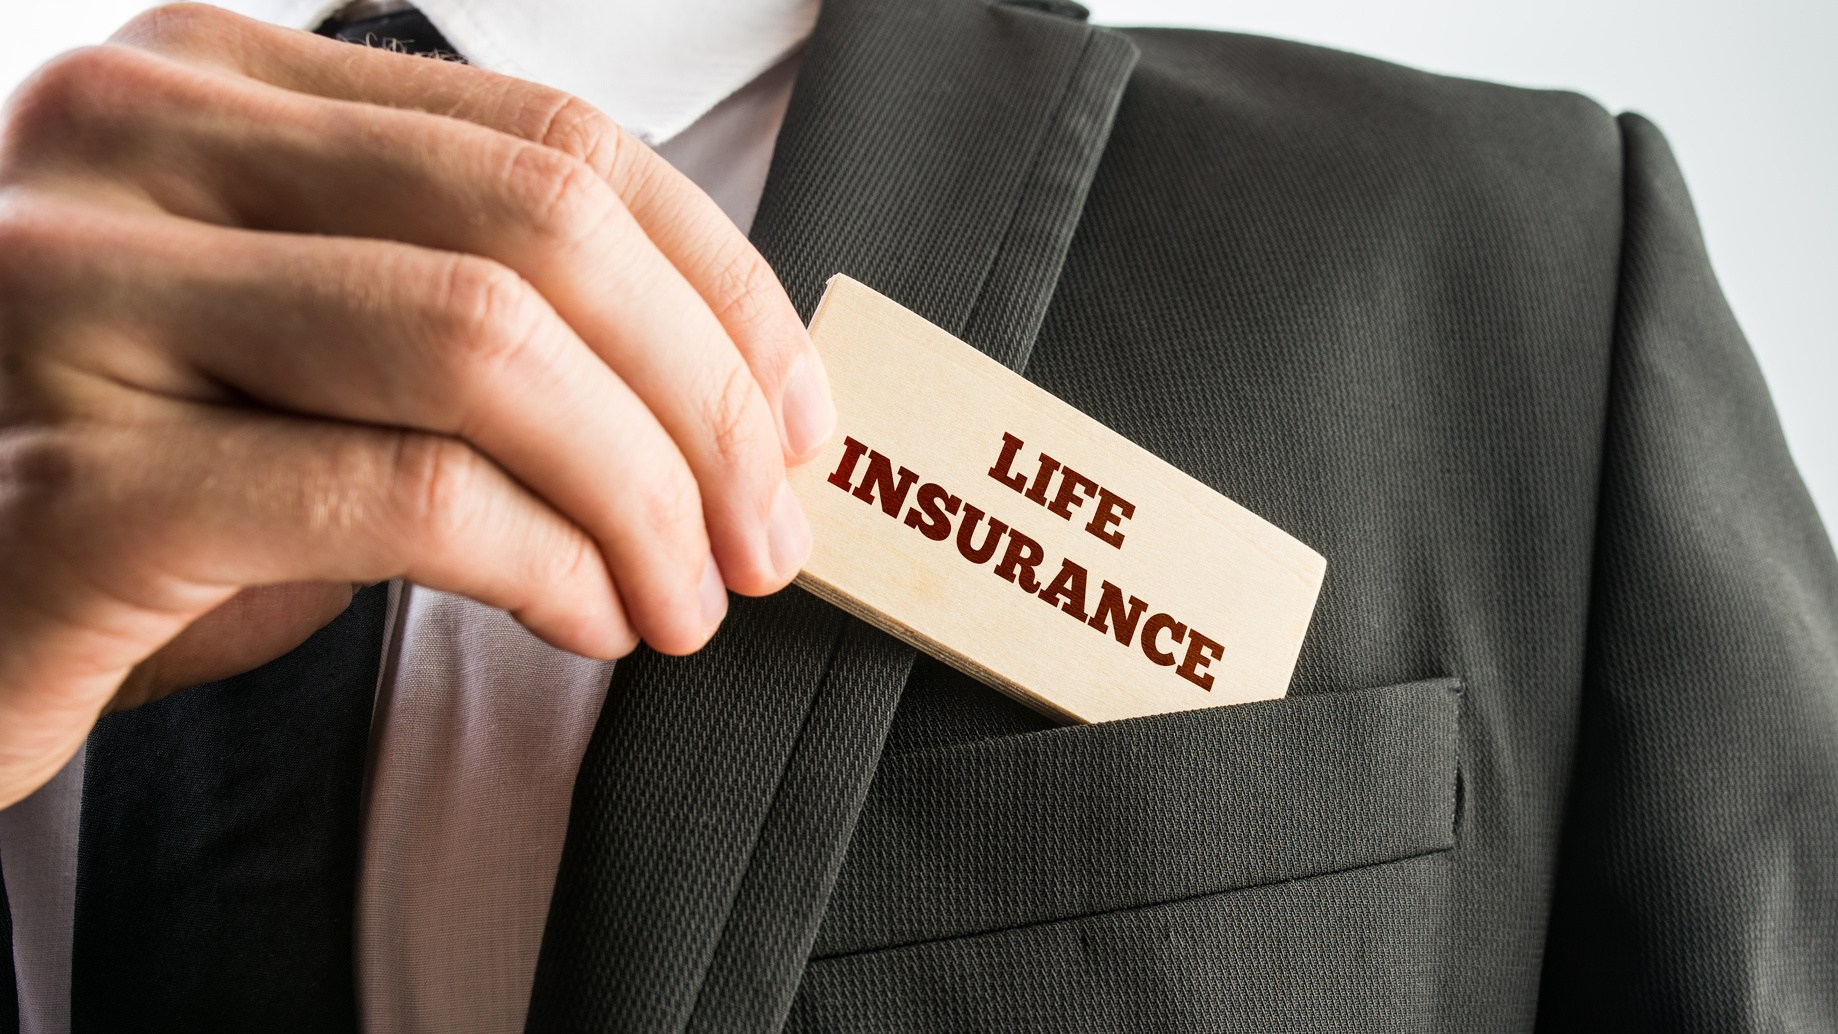 While employees might not like to talk about life insurance, they'll be glad you thought of it later on.